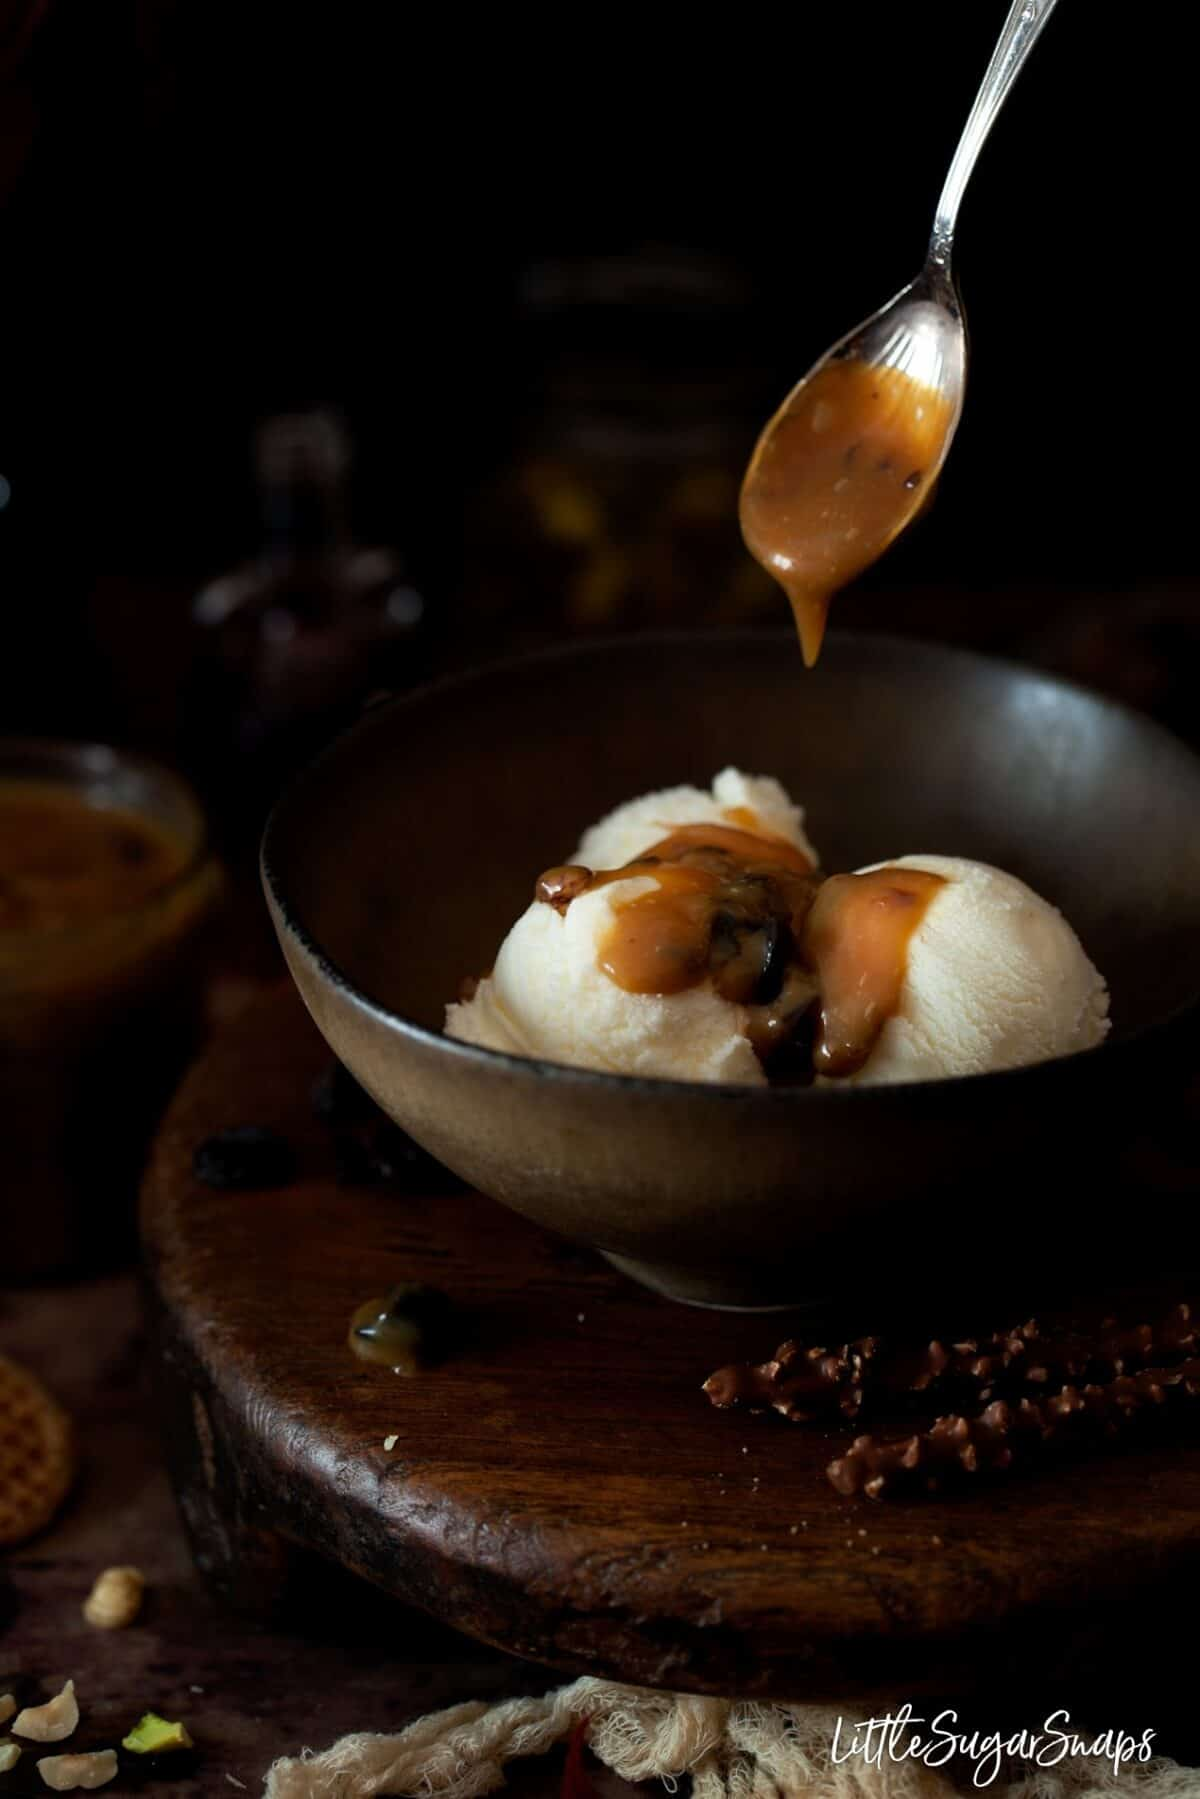 Spooning rum & raisin sauce onto vanilla ice cream in a bowl